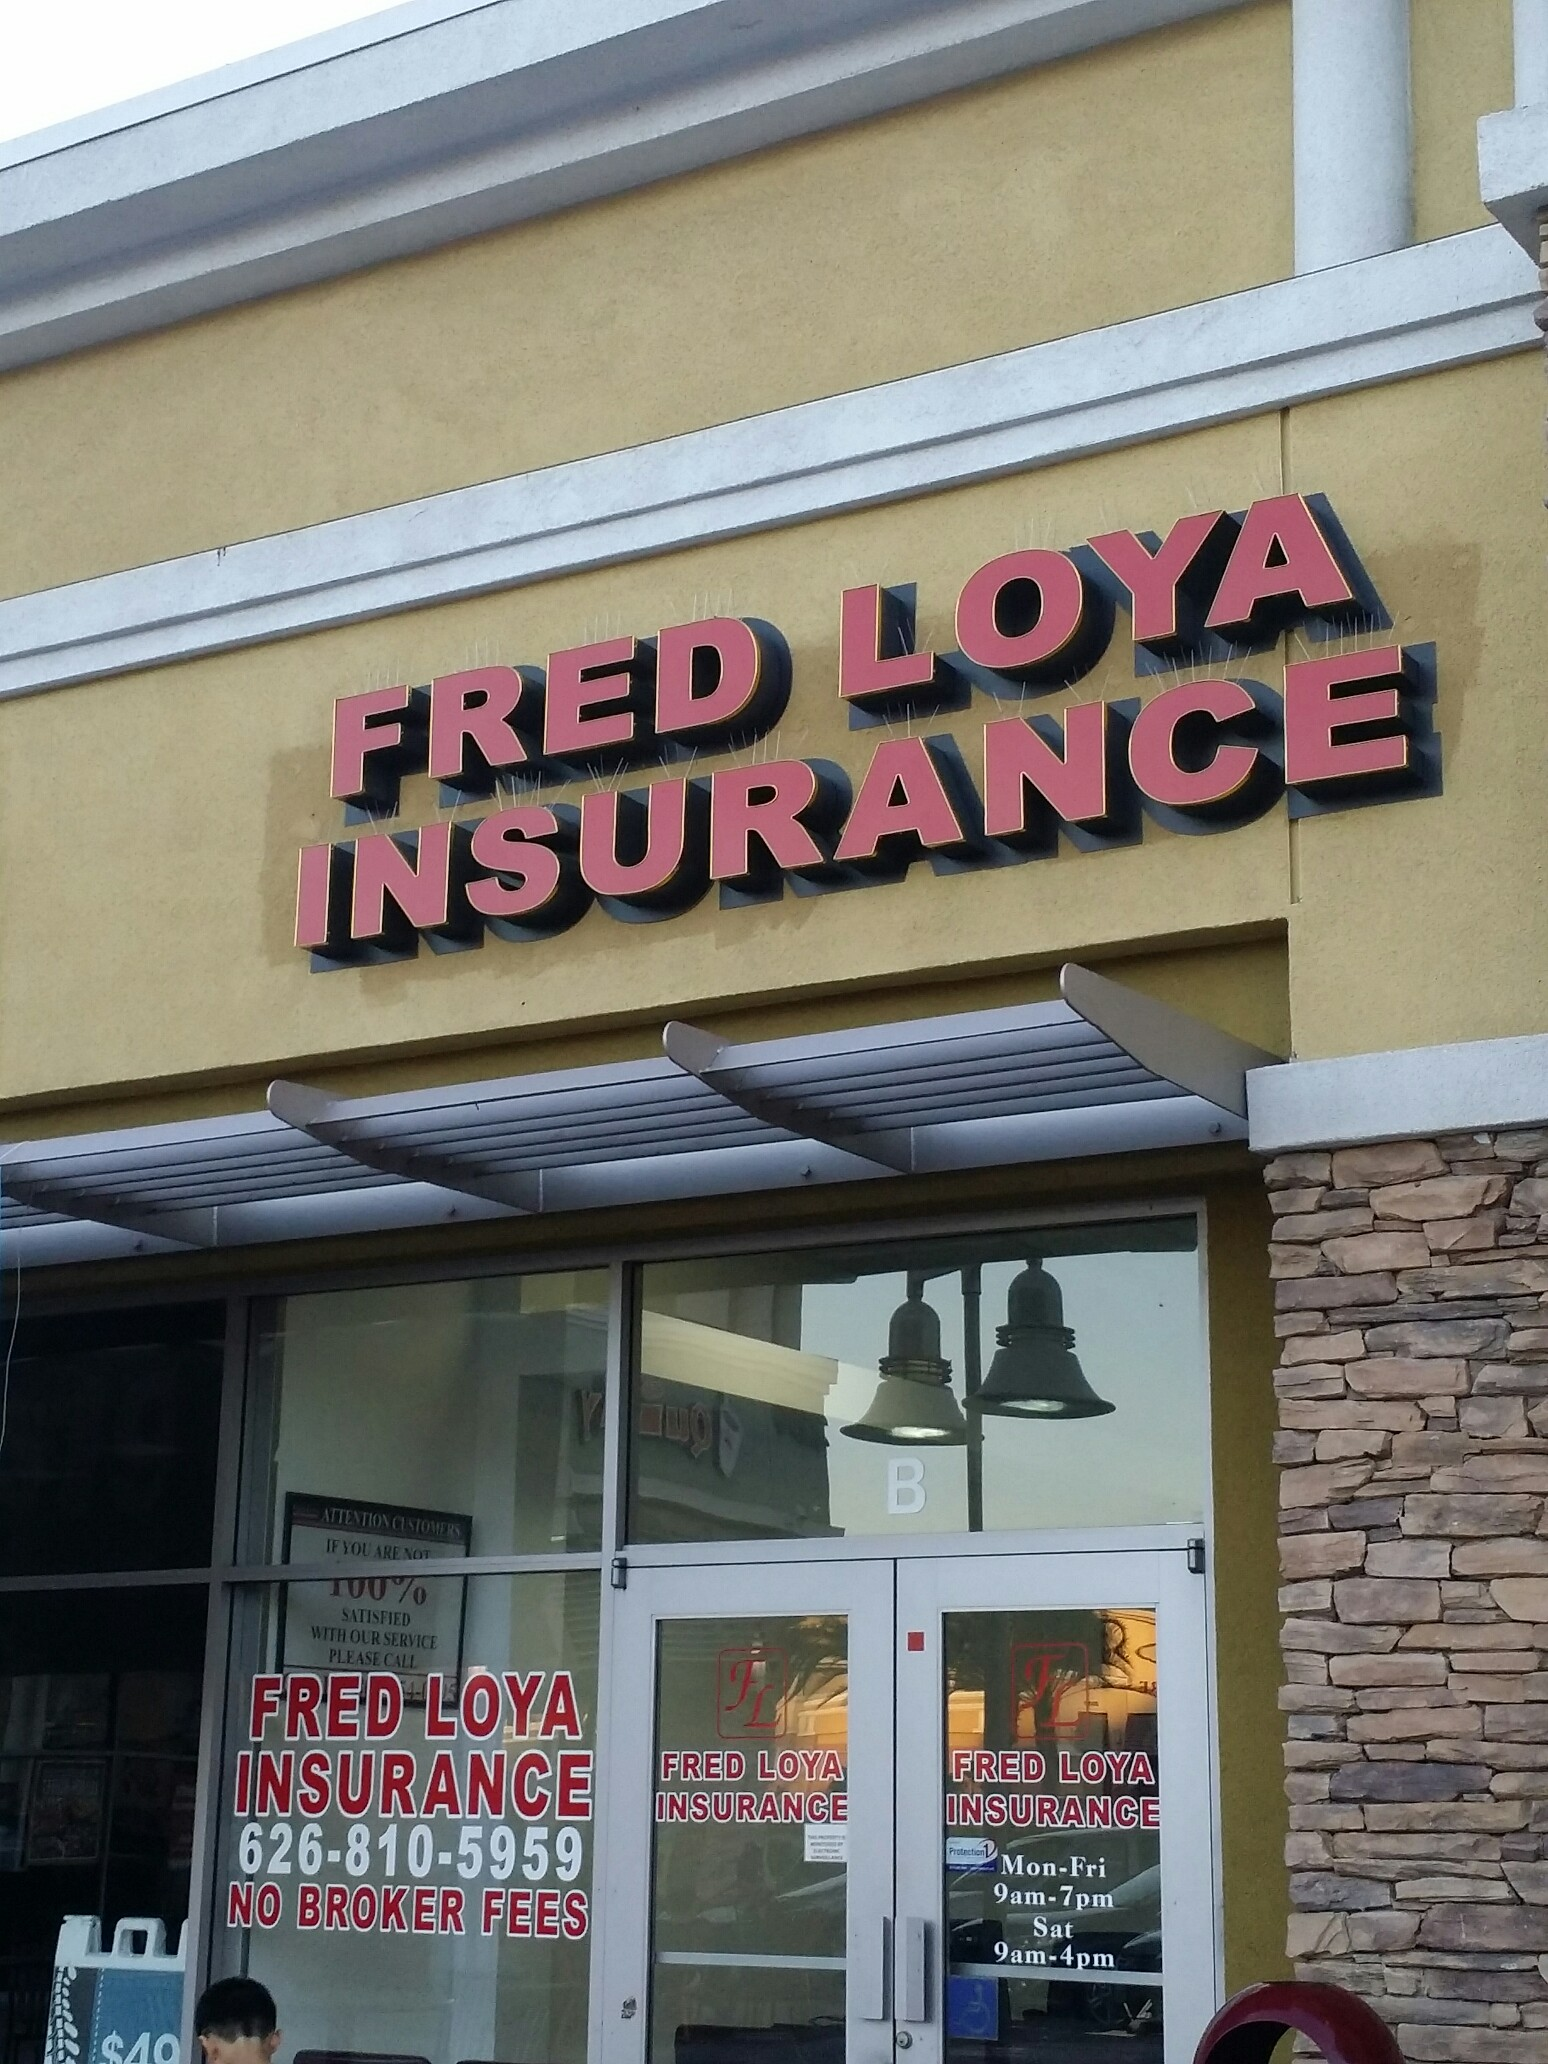 Fred Loya Insurance Quote Fred Loya Insurance Corporate Number  Raipurnews